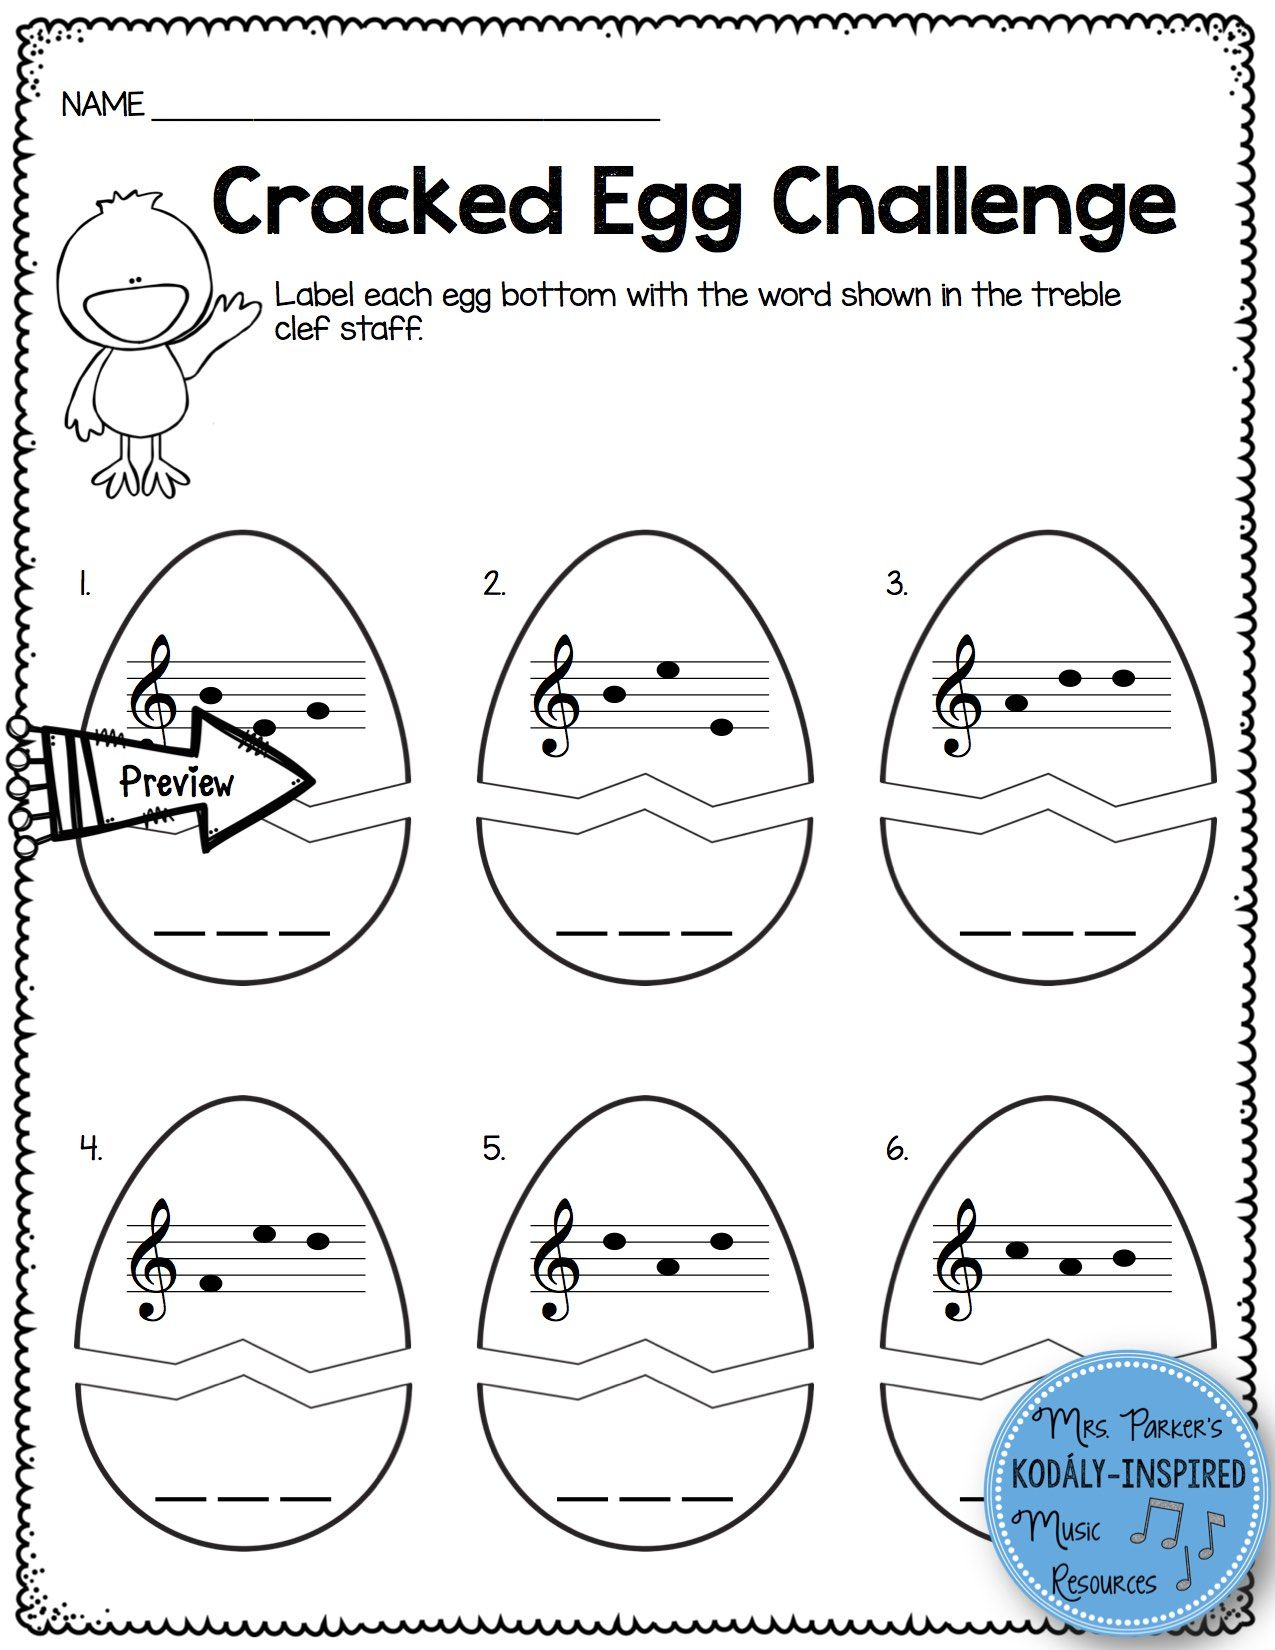 Cracked Egg Challenge Identifying Three Letter Words In